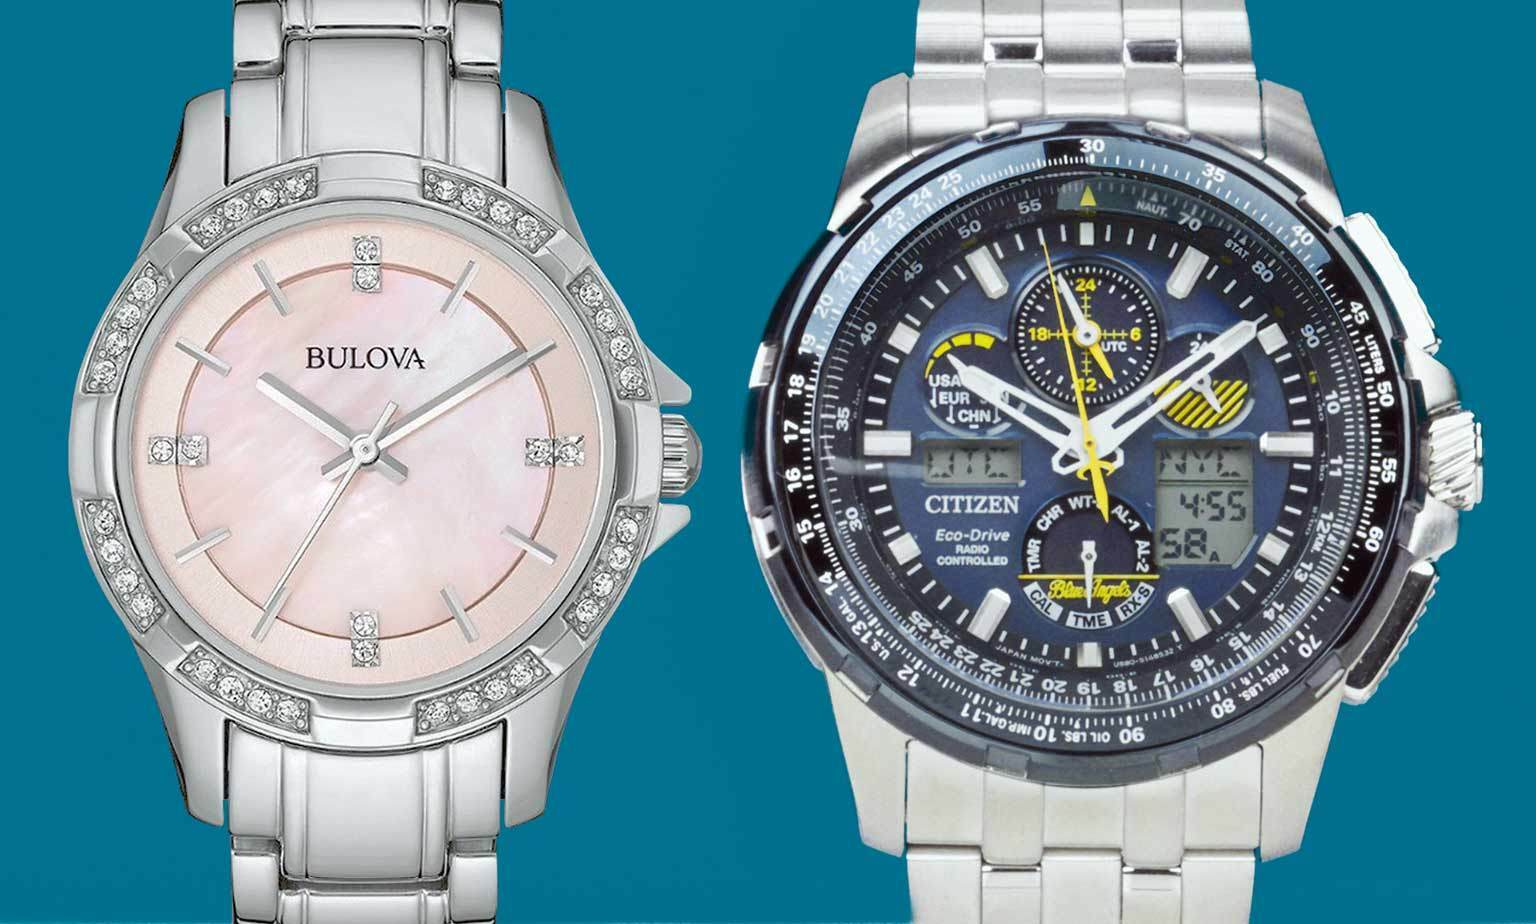 Buzz-Worthy Watch Brands